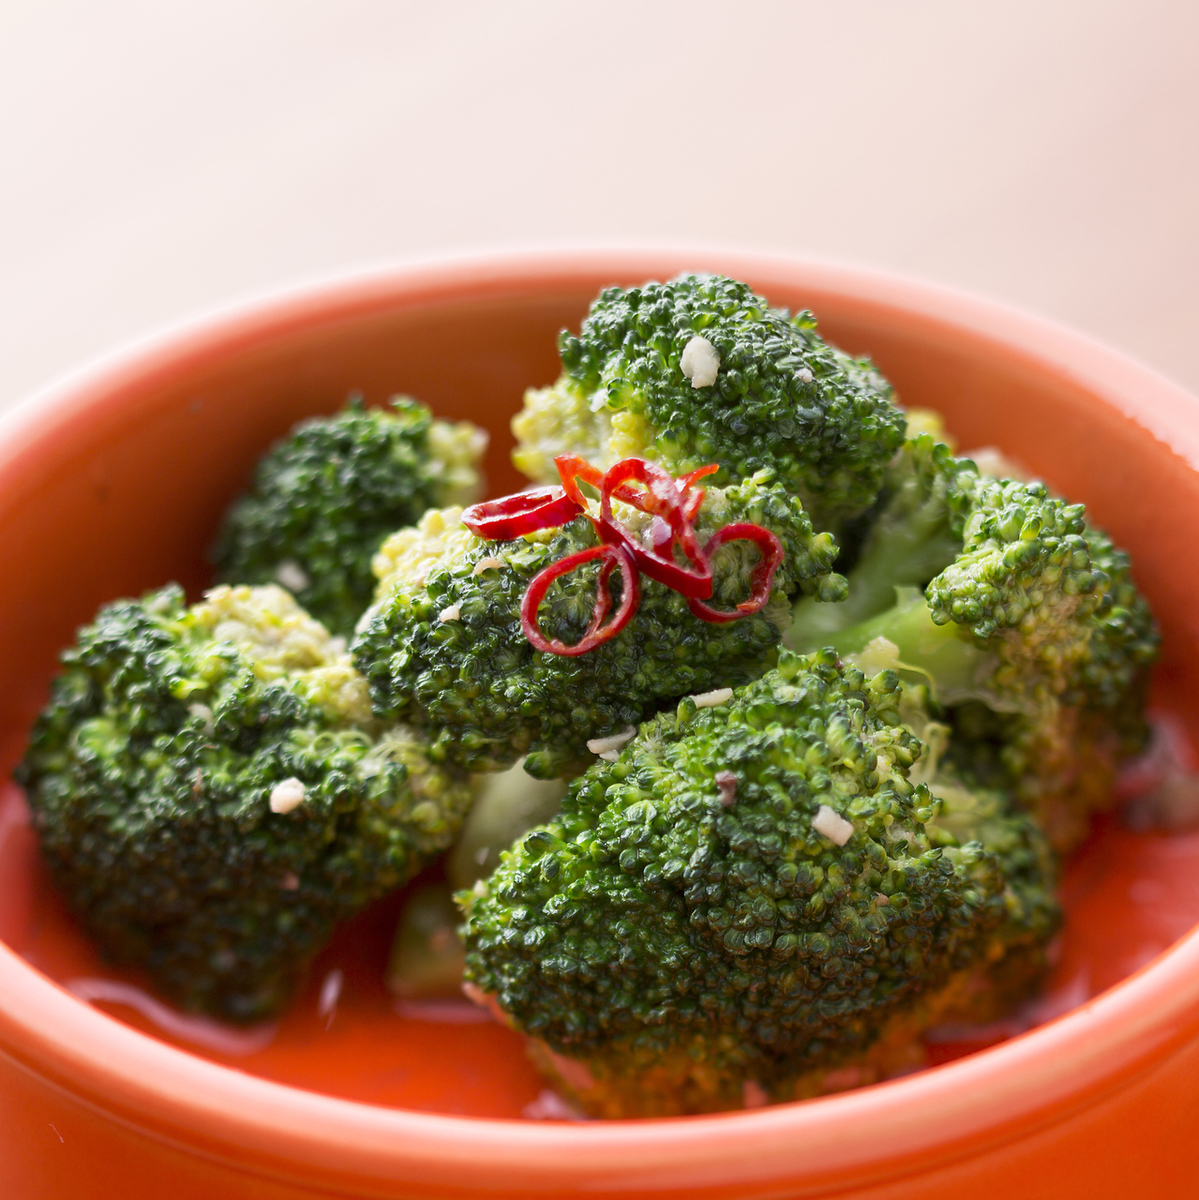 Broccoli Tosa Garlic Peperoncino